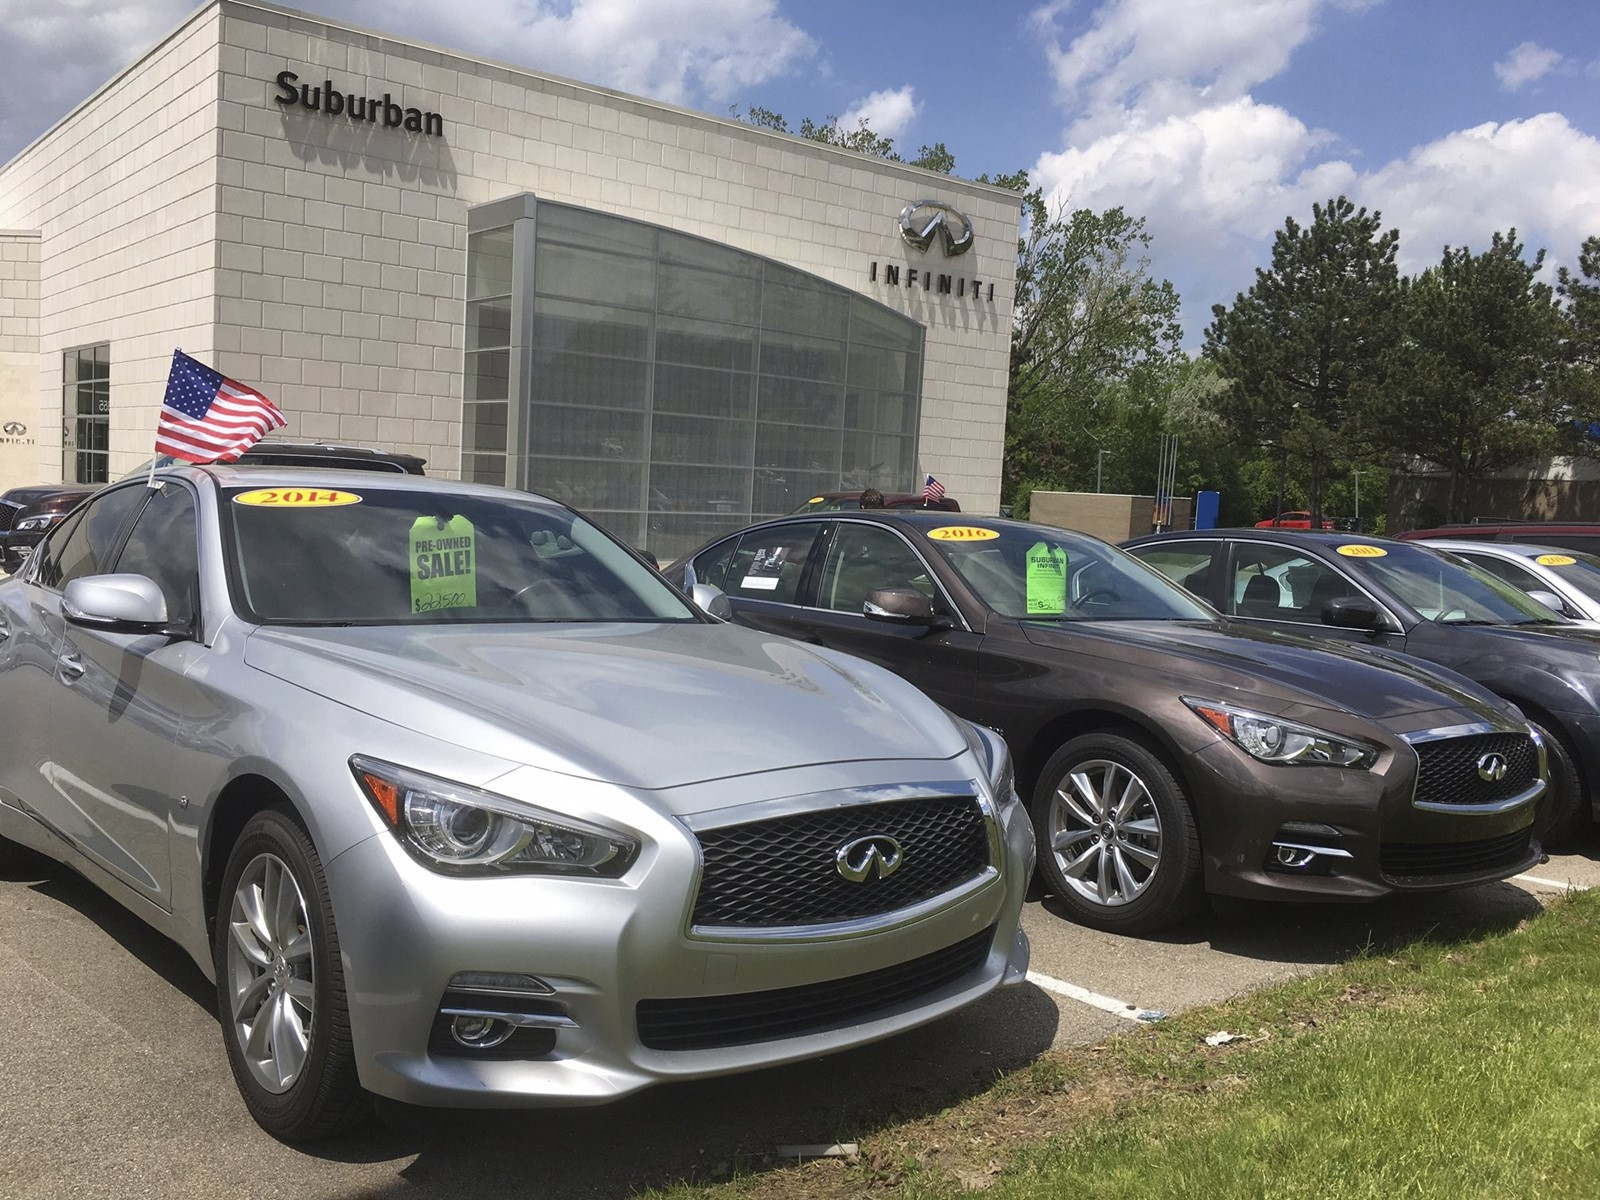 Used Car Market Awesome Used Car Market Seeing Big Shift Baltimore Sun